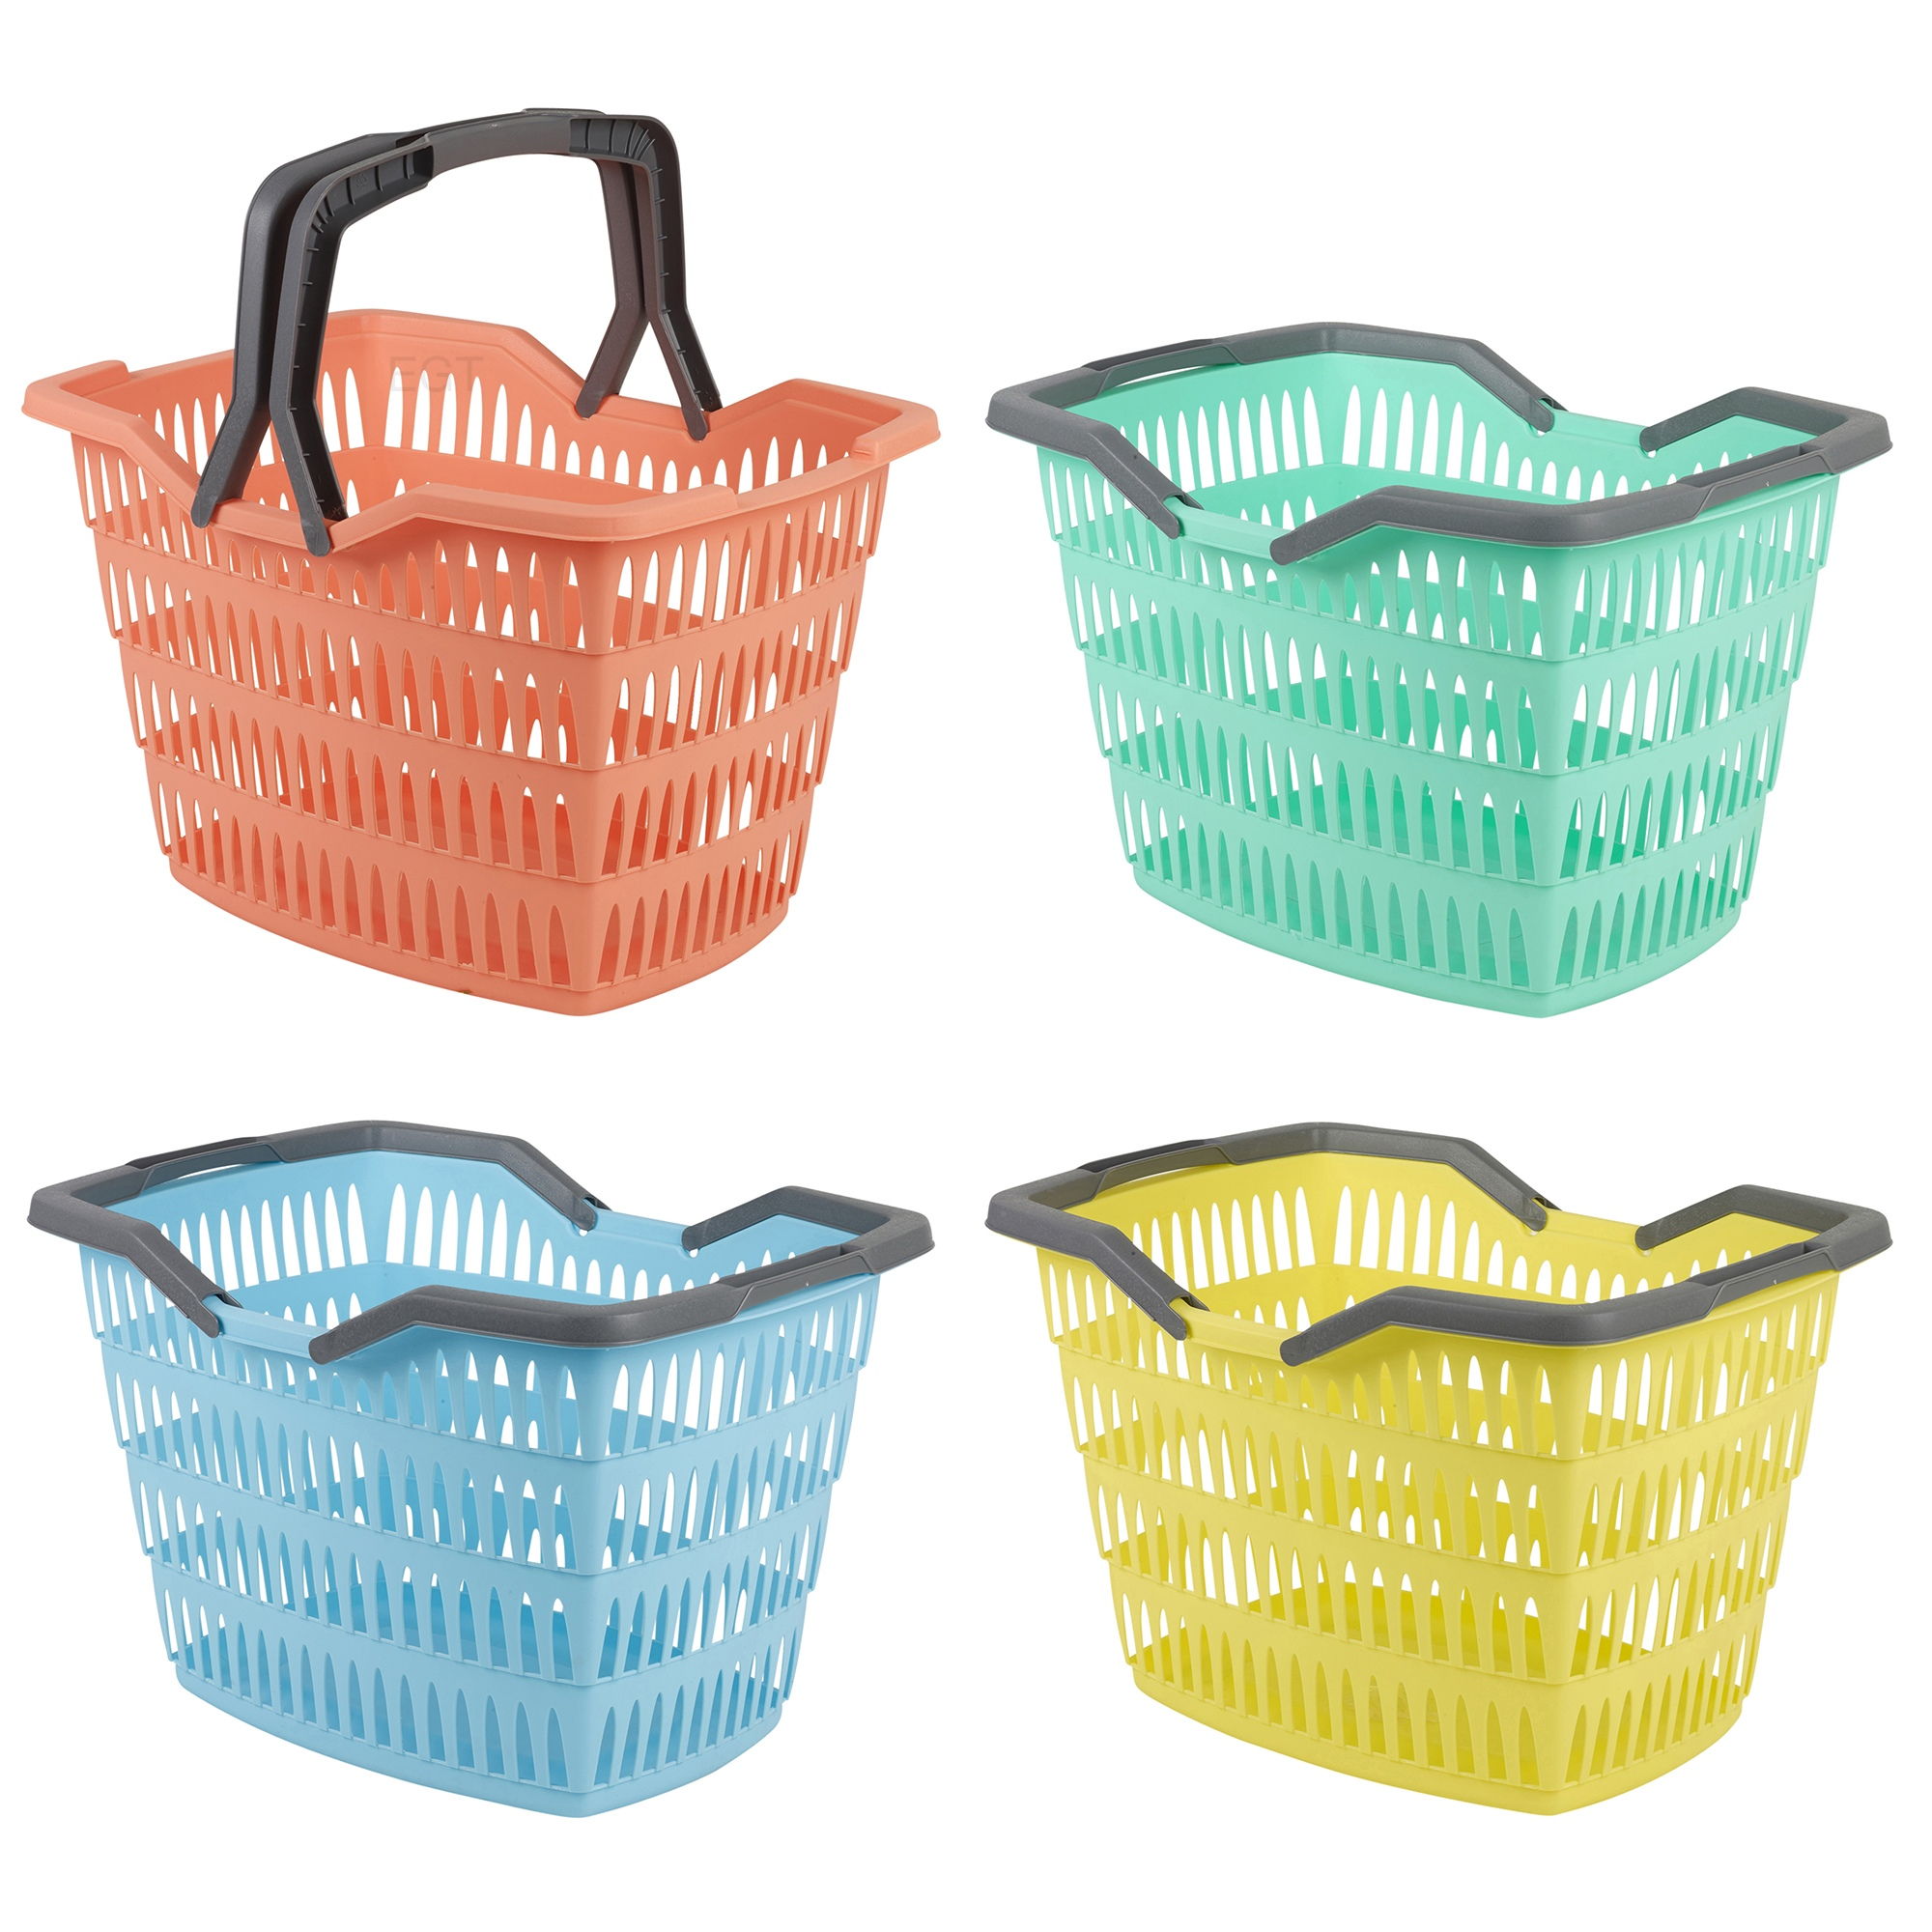 25 Litre Laundry Basket With Folding Handles Storage